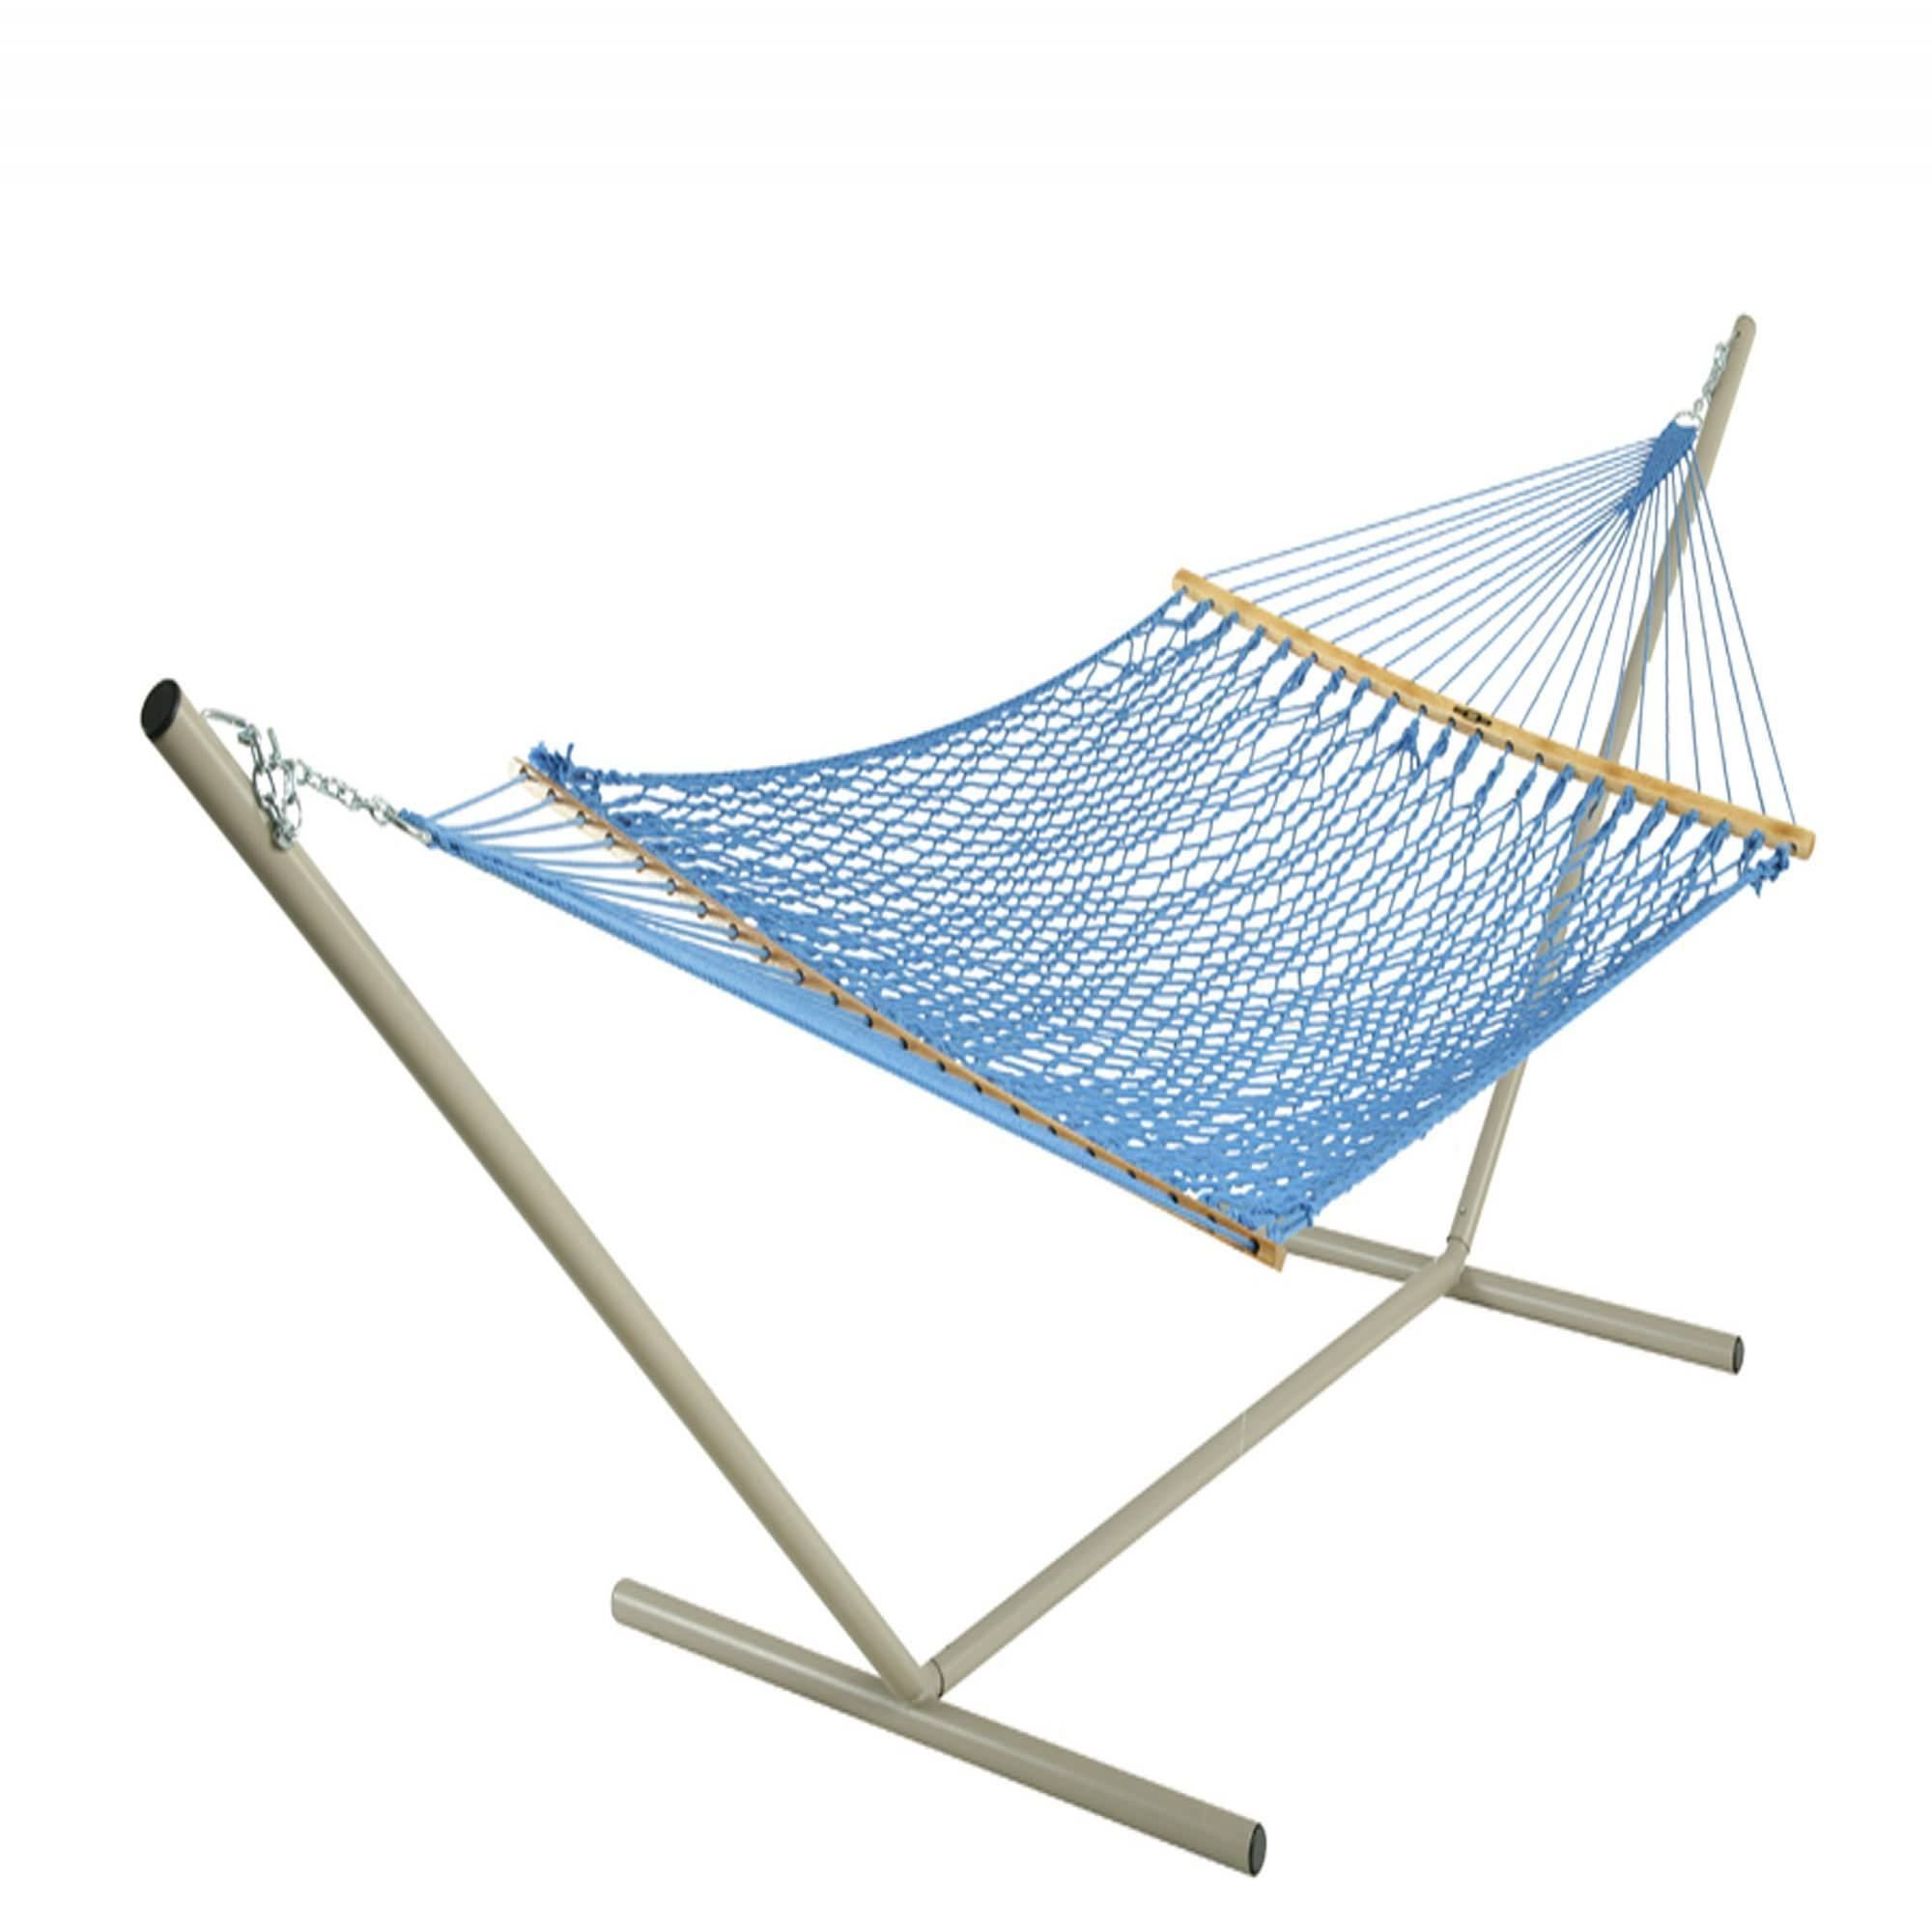 Kings large duracord rope hammock stand not included rope